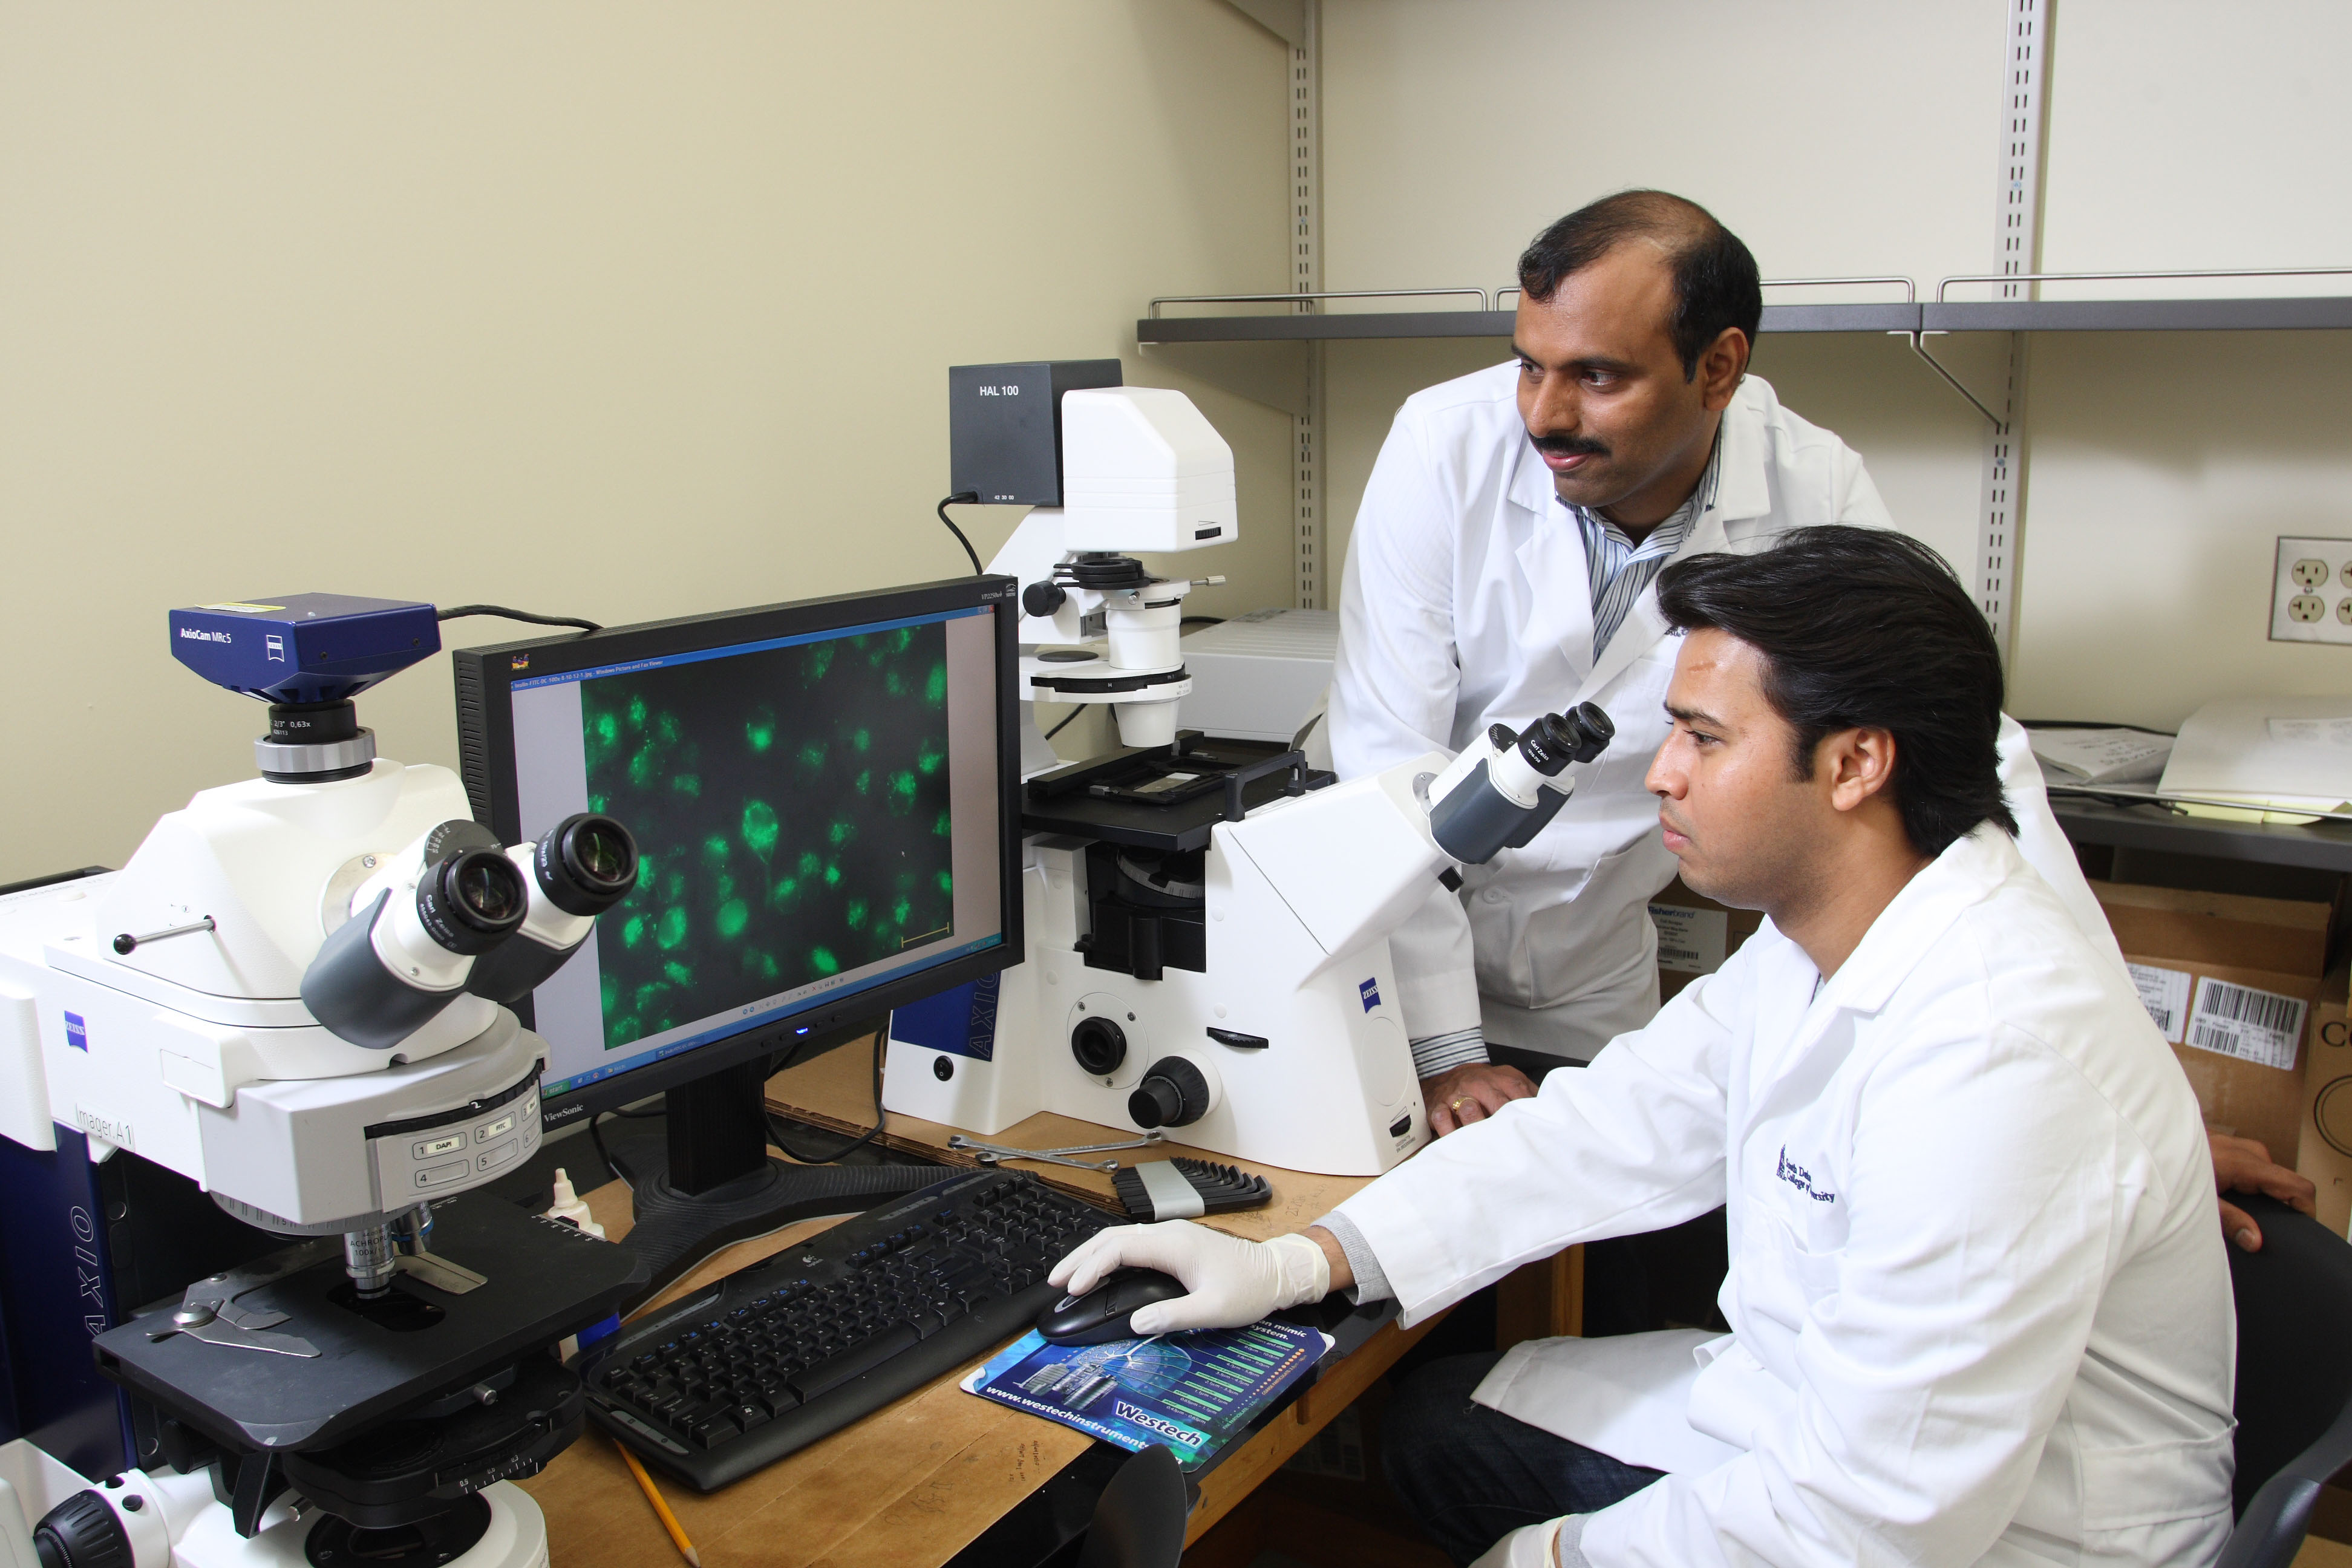 Faculty and students working in a lab